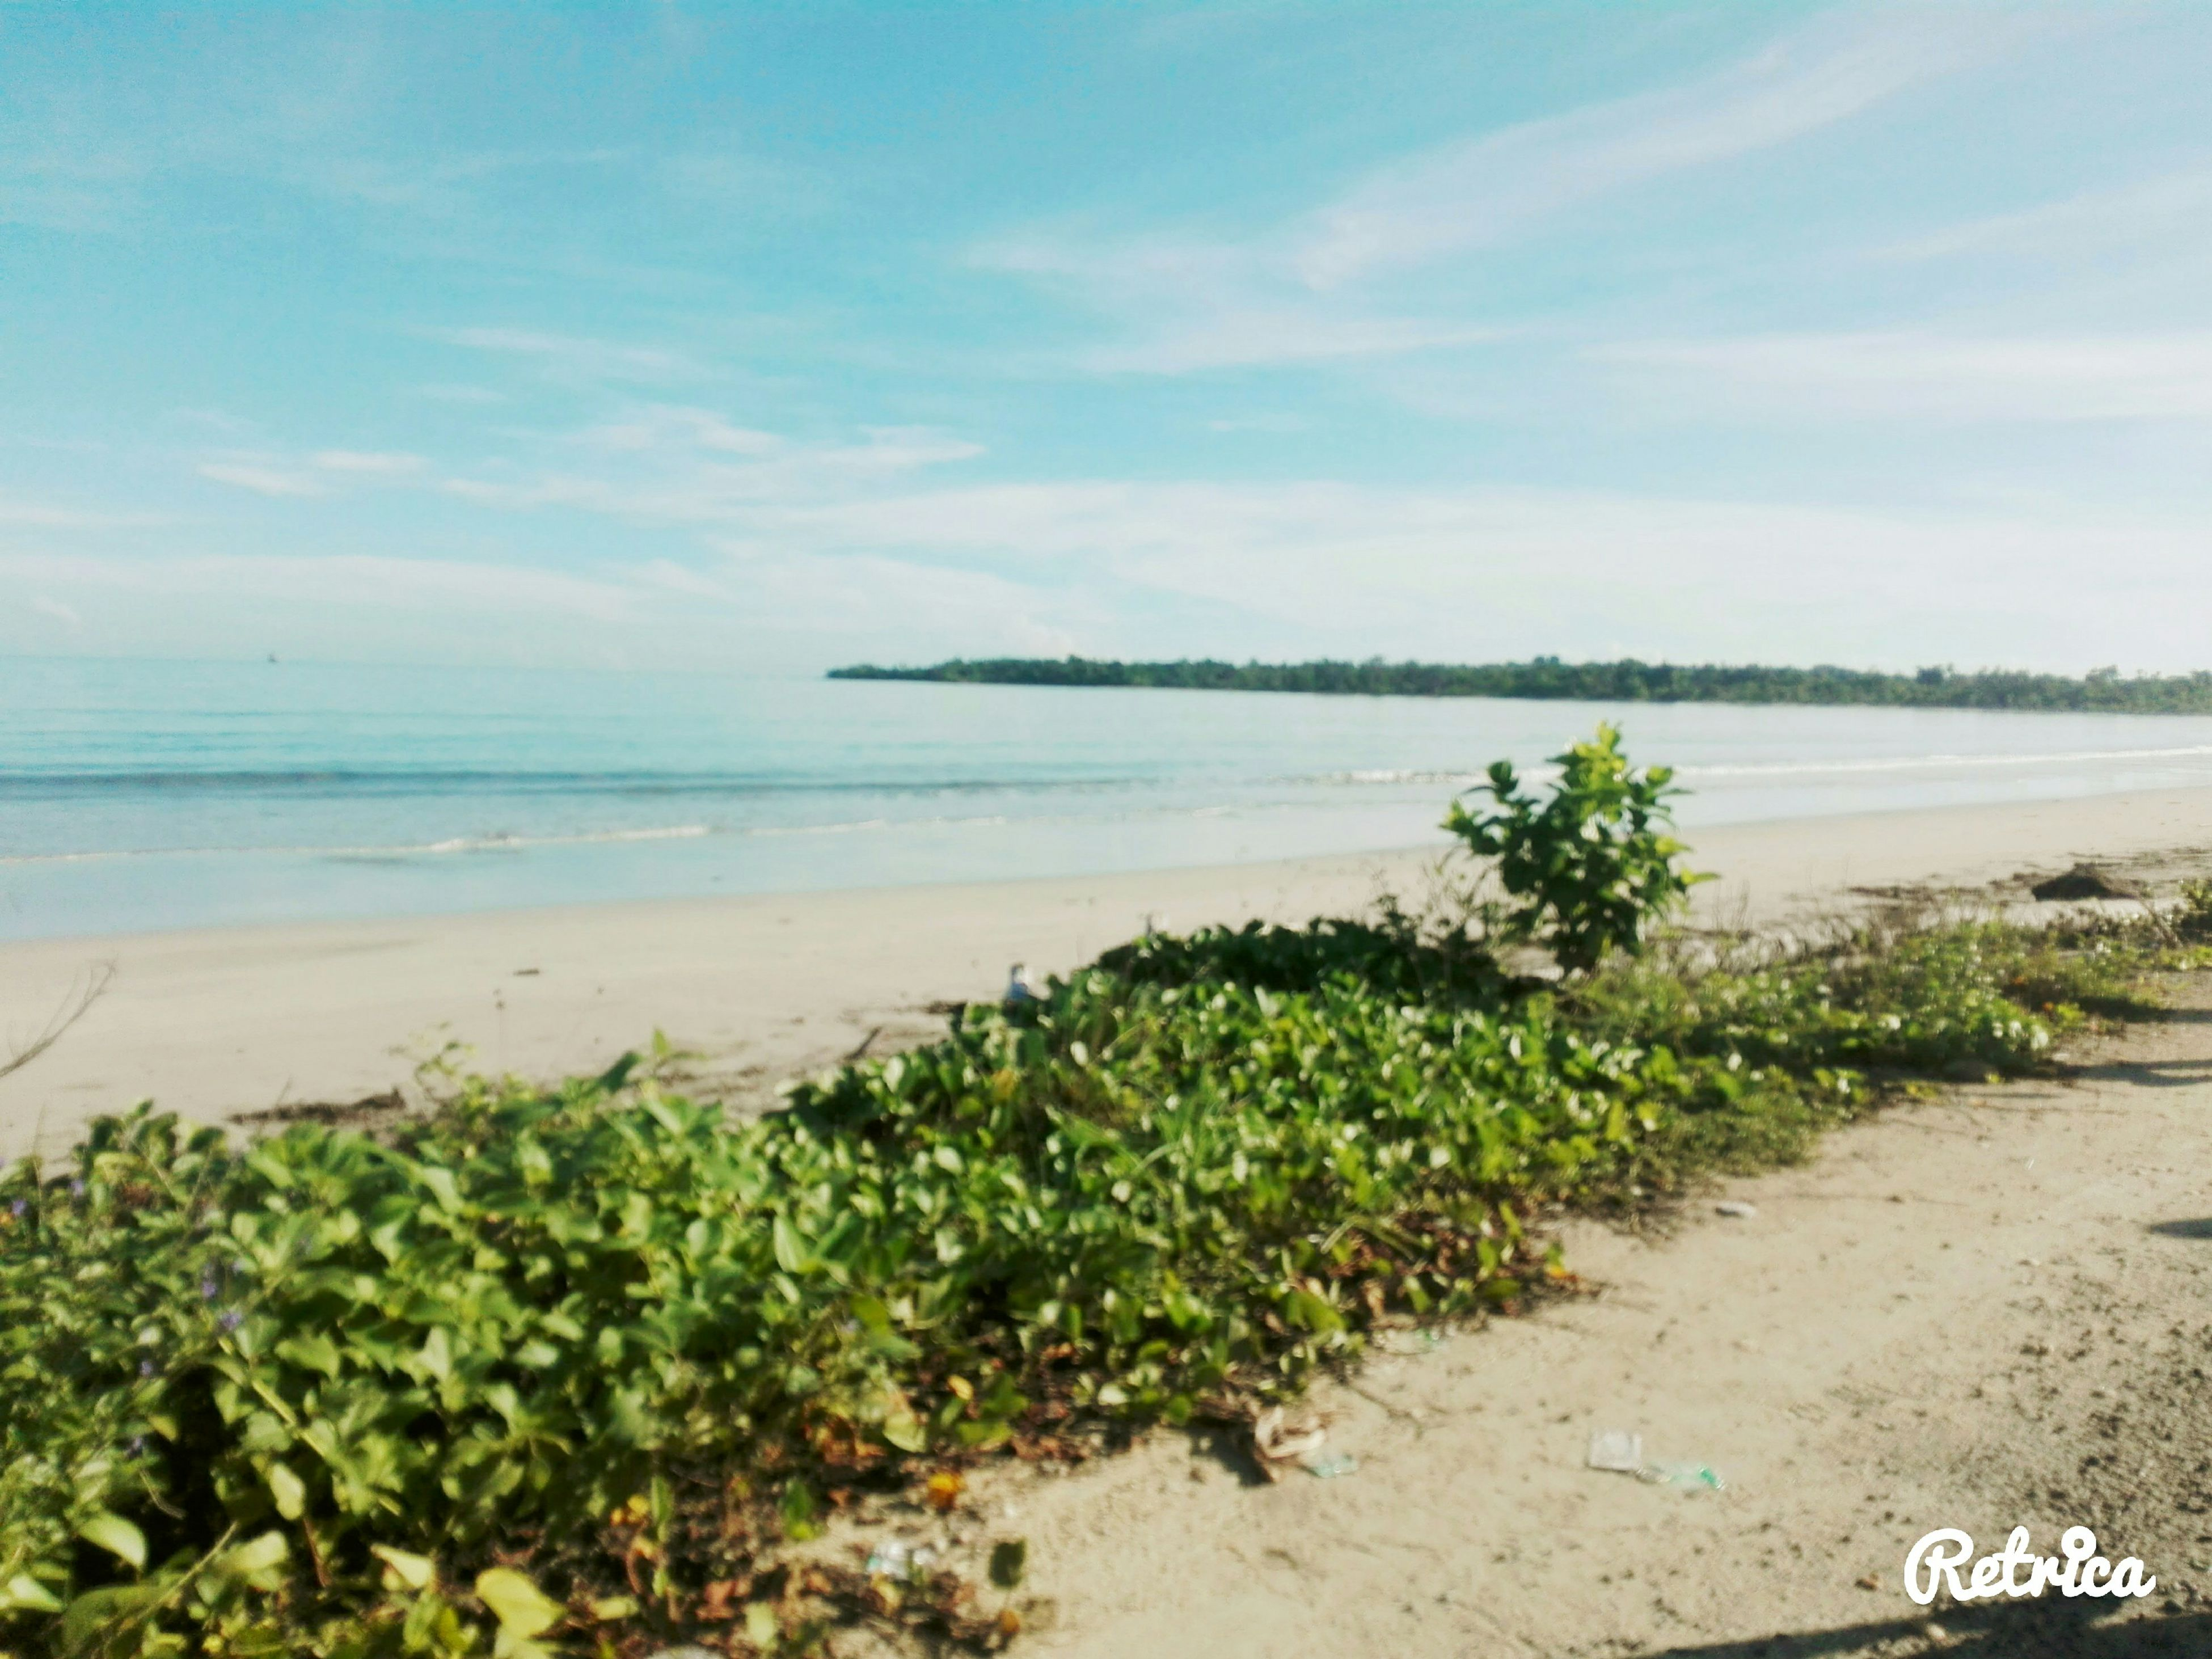 water, sea, beach, tranquil scene, tranquility, sky, scenics, horizon over water, nature, beauty in nature, shore, plant, sand, growth, grass, idyllic, coastline, day, tree, outdoors